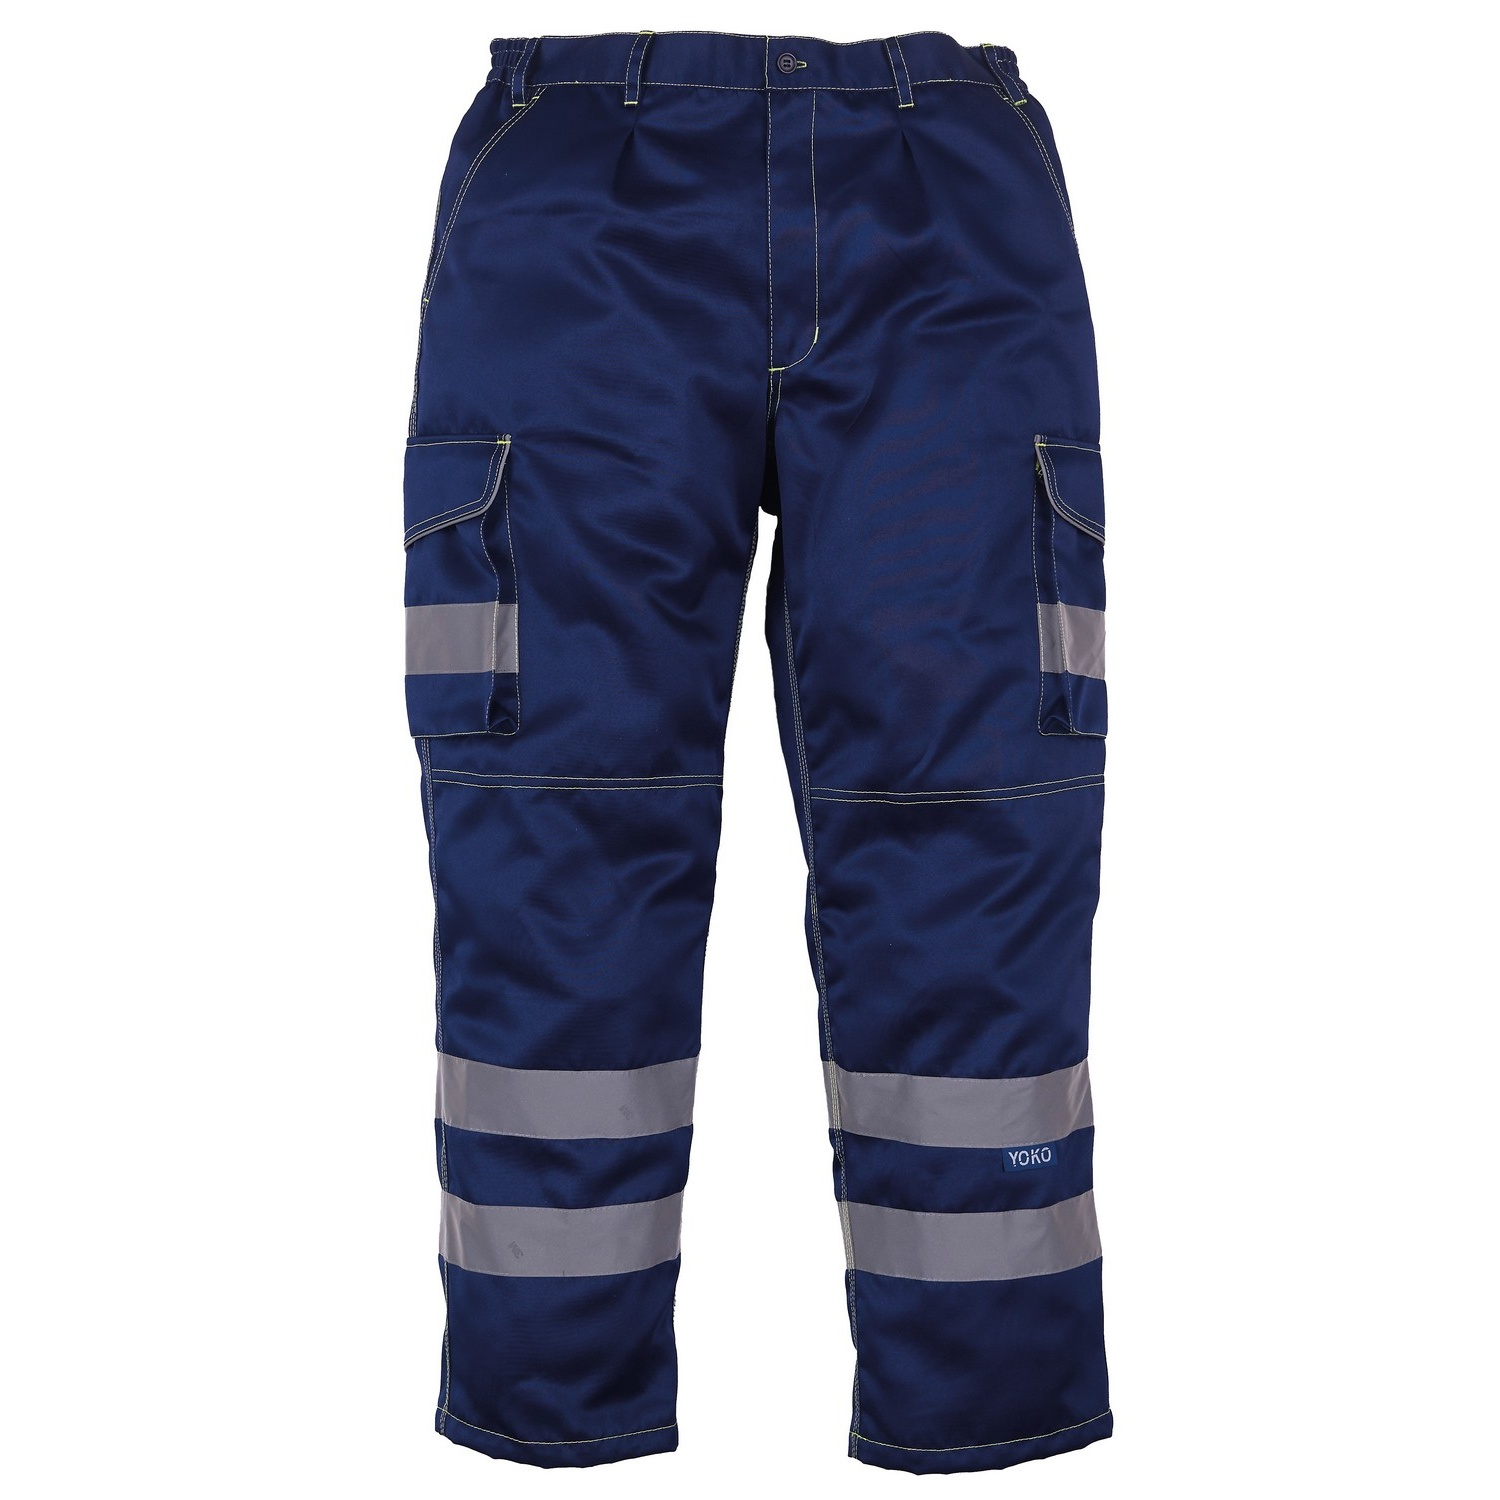 Yoko Mens Hi Vis Polycotton Cargo Trousers With Knee Pad Pockets (Pack of 2) (38L) (Navy)